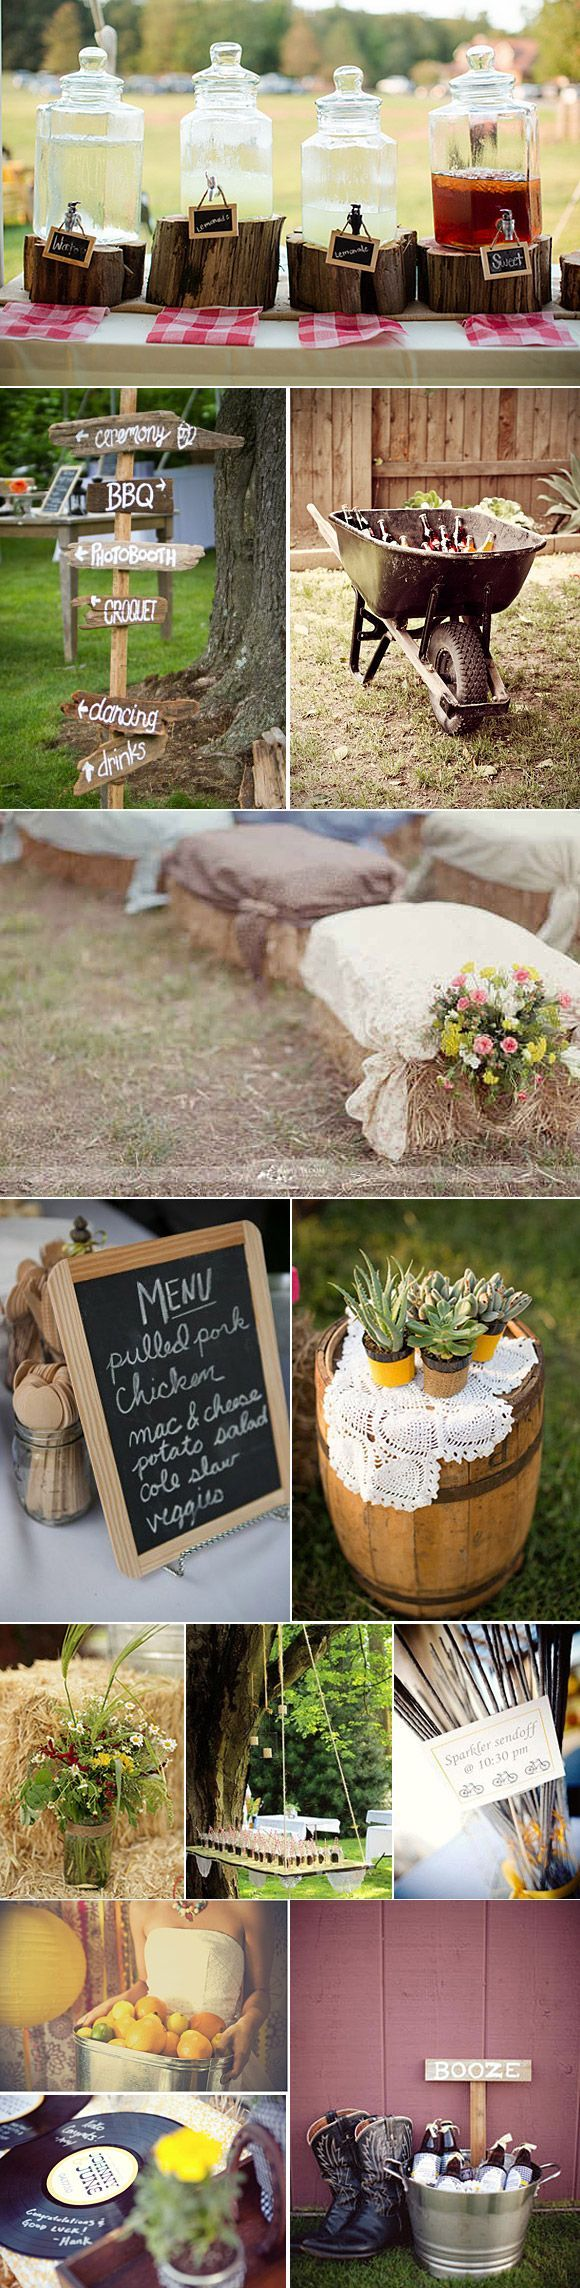 Country Wedding Ideas for Cakes, Decorations, Menu Signs, Seating with Hay Bales and More Ideas I Love